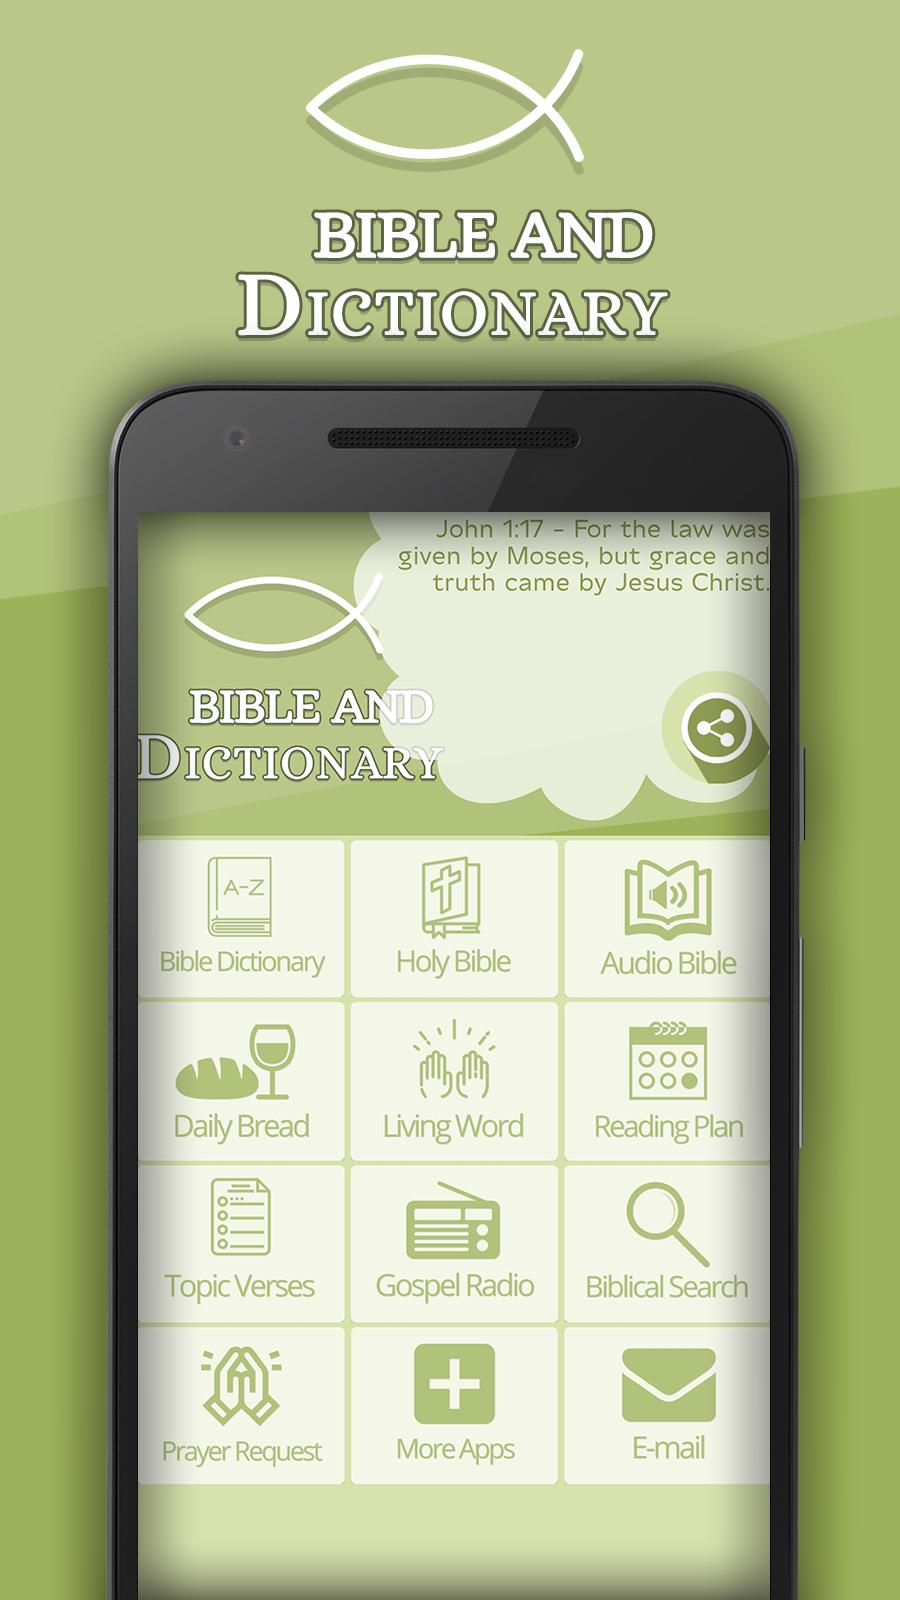 Bible and Dictionary for Android - APK Download